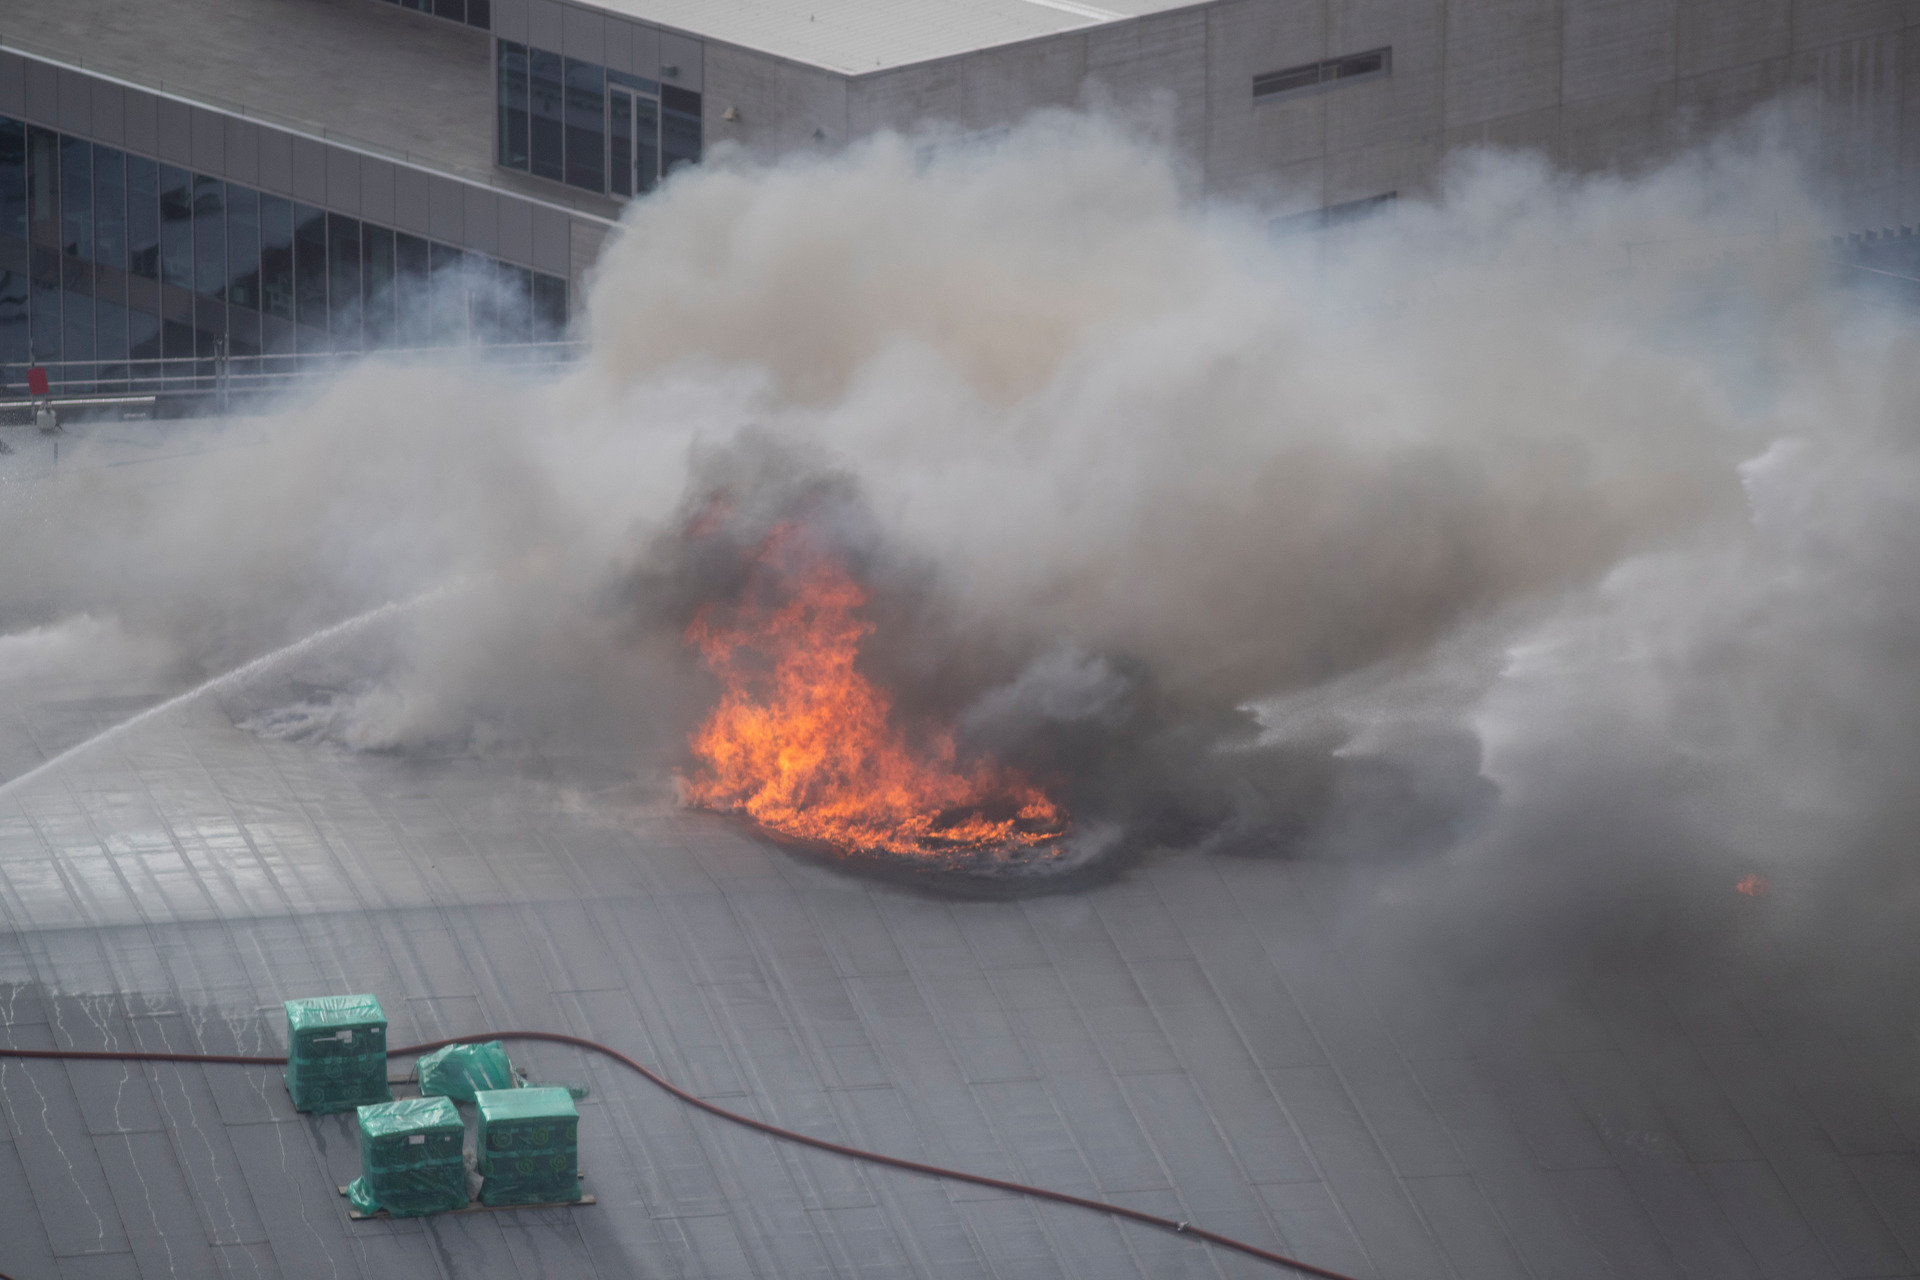 SkyCity Convention Centre could collapse if fire burns long enough - expert